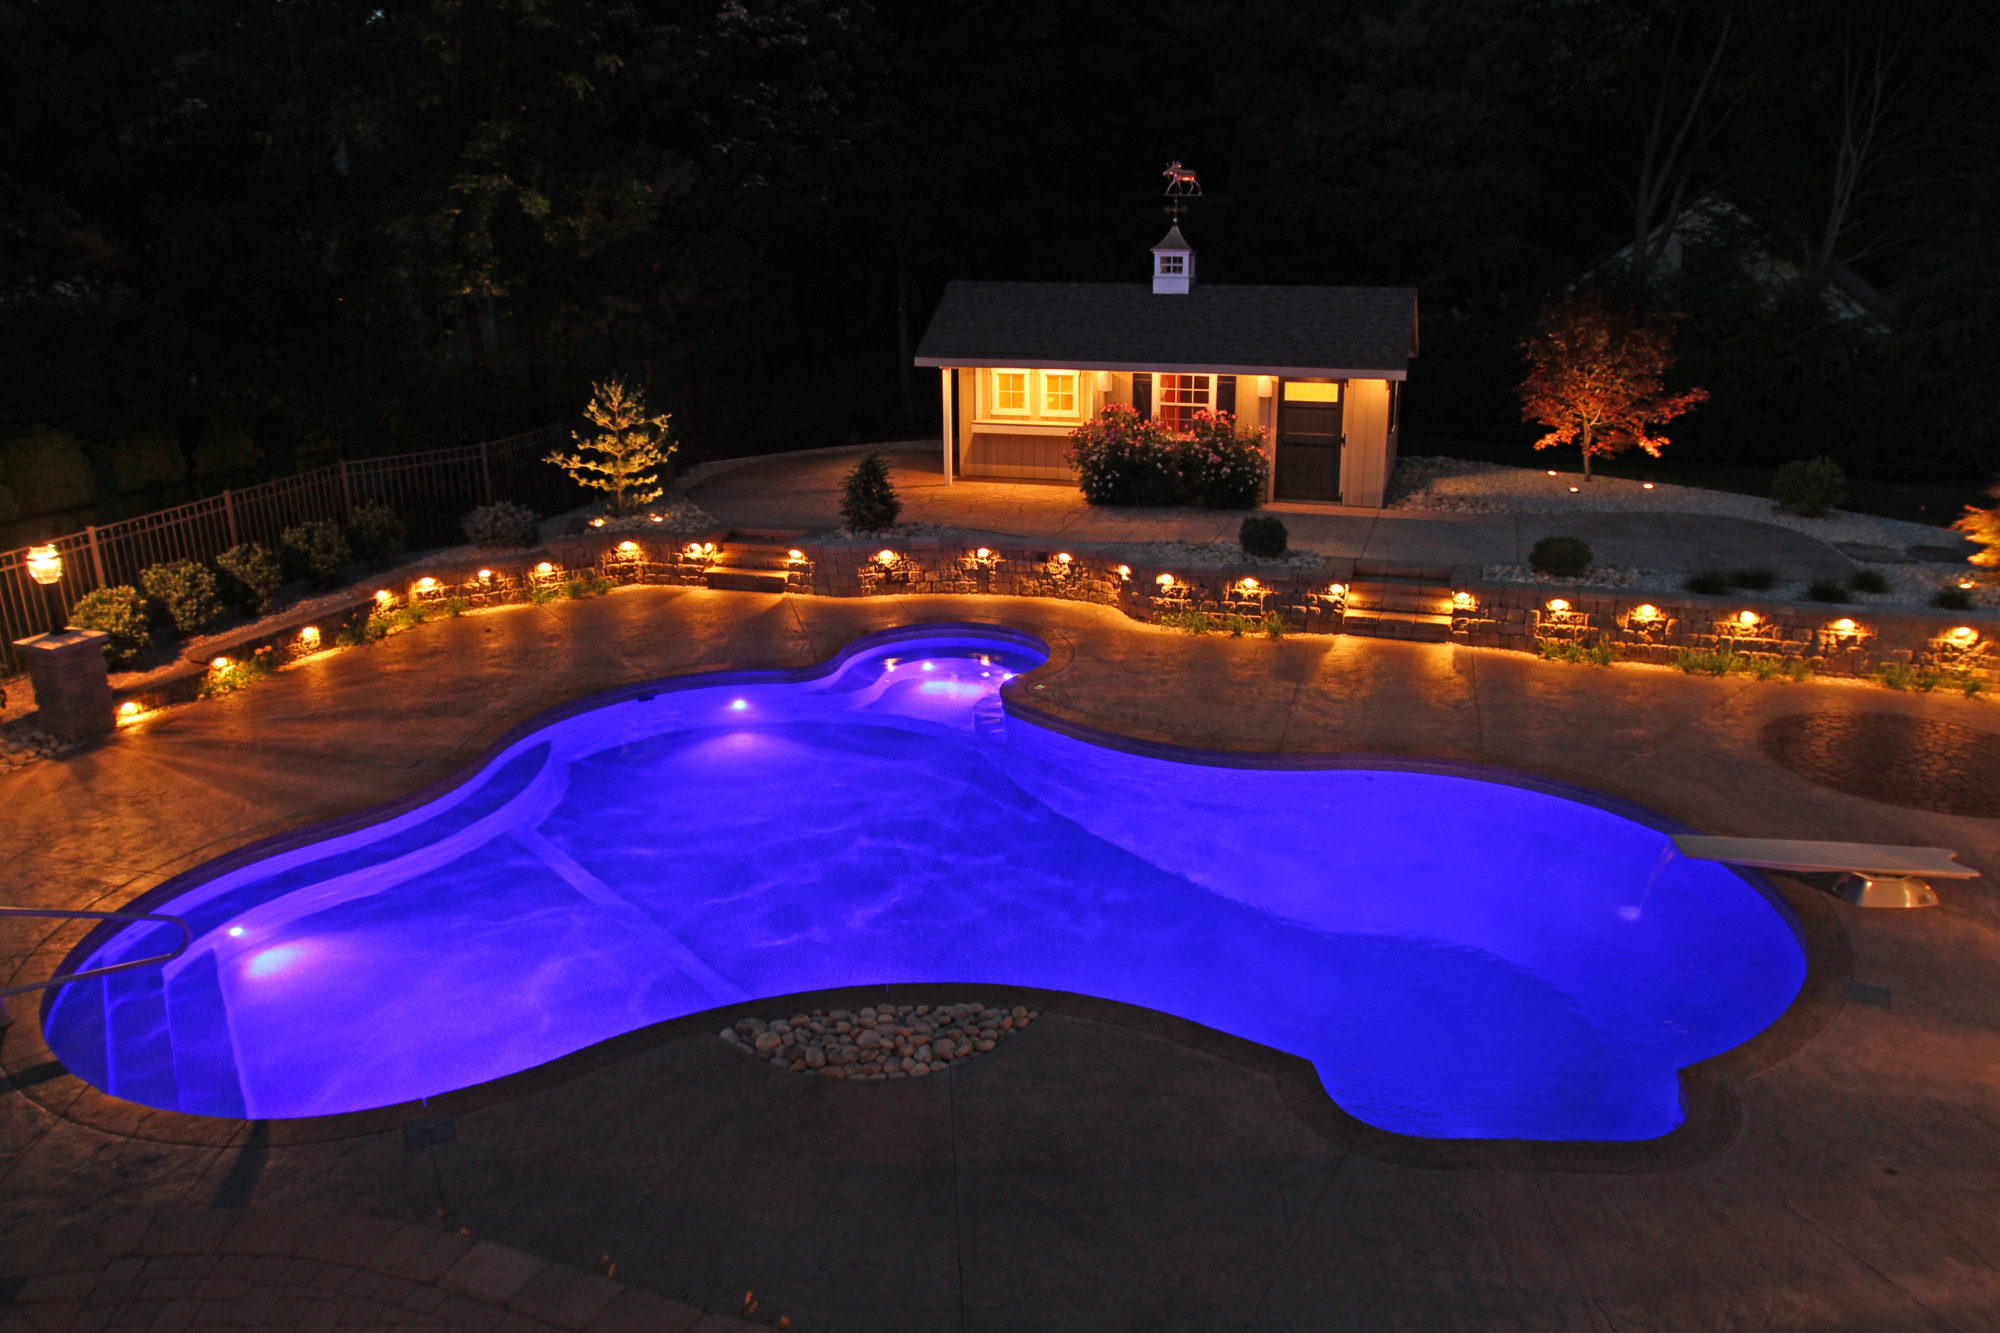 This is a photo of a custom inground pool with purple backlighting at night.